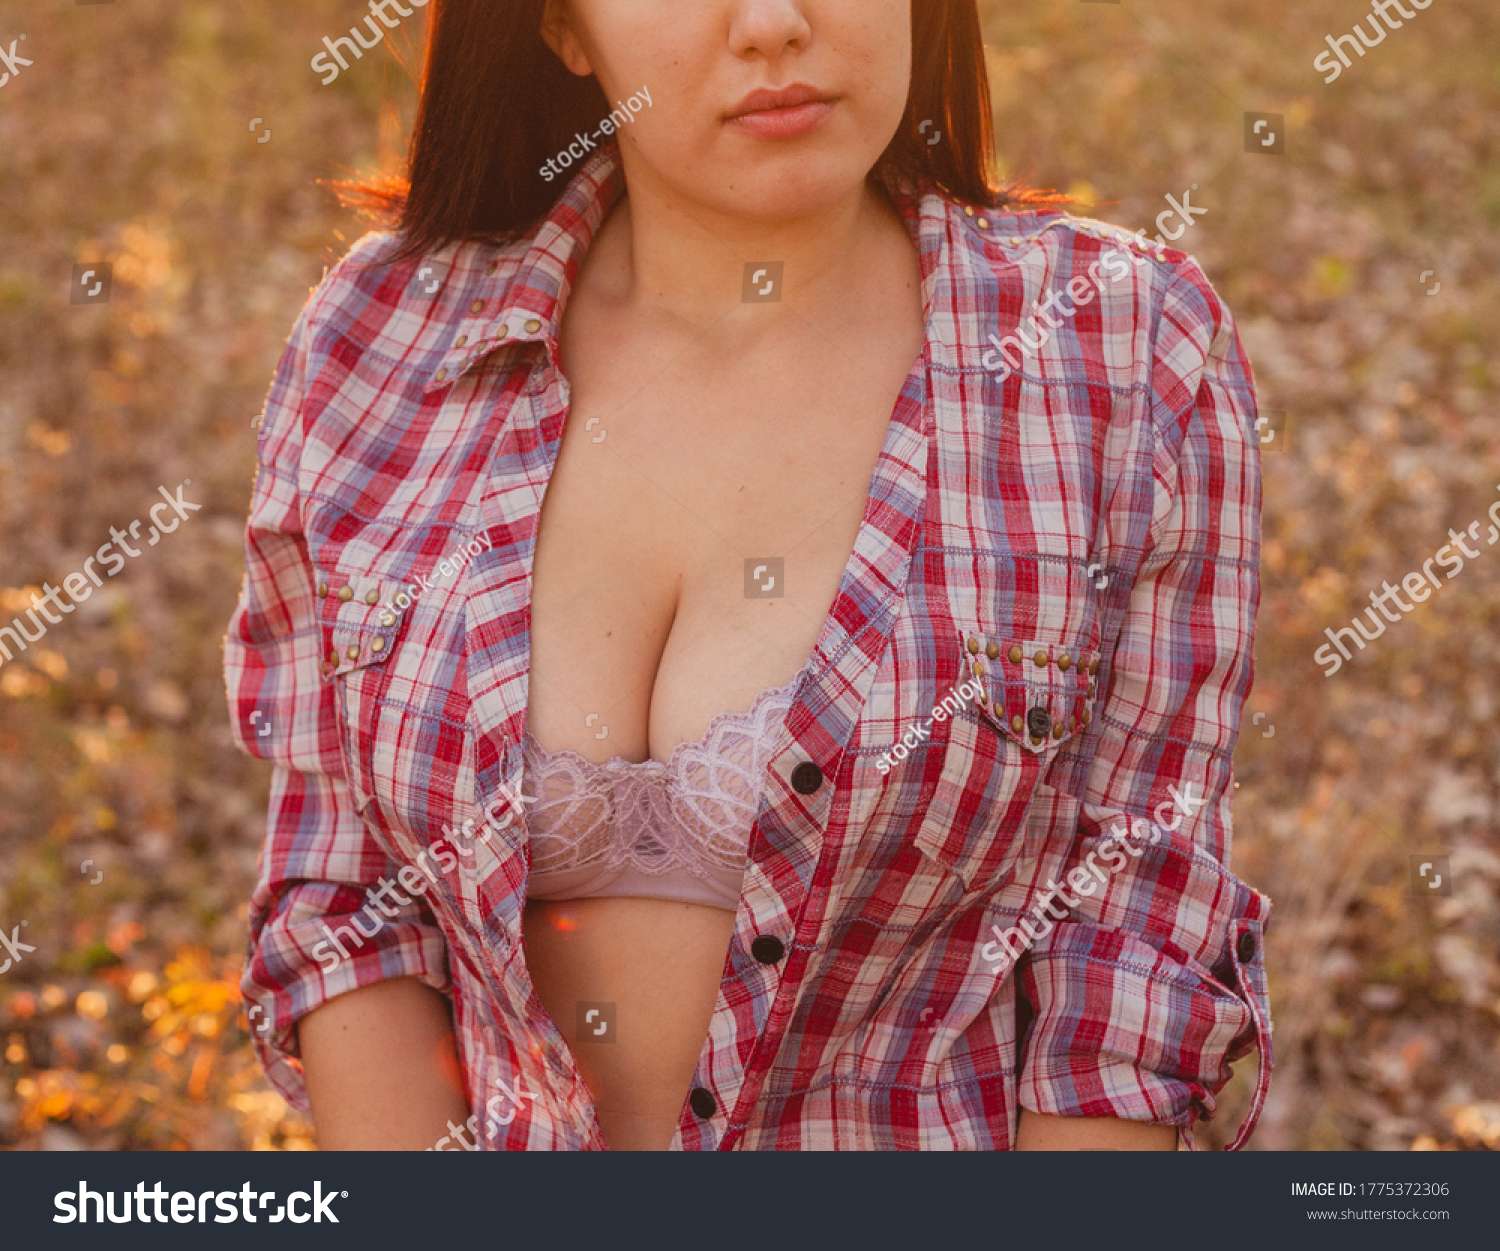 Girl in half open shirt posing outside in the fields